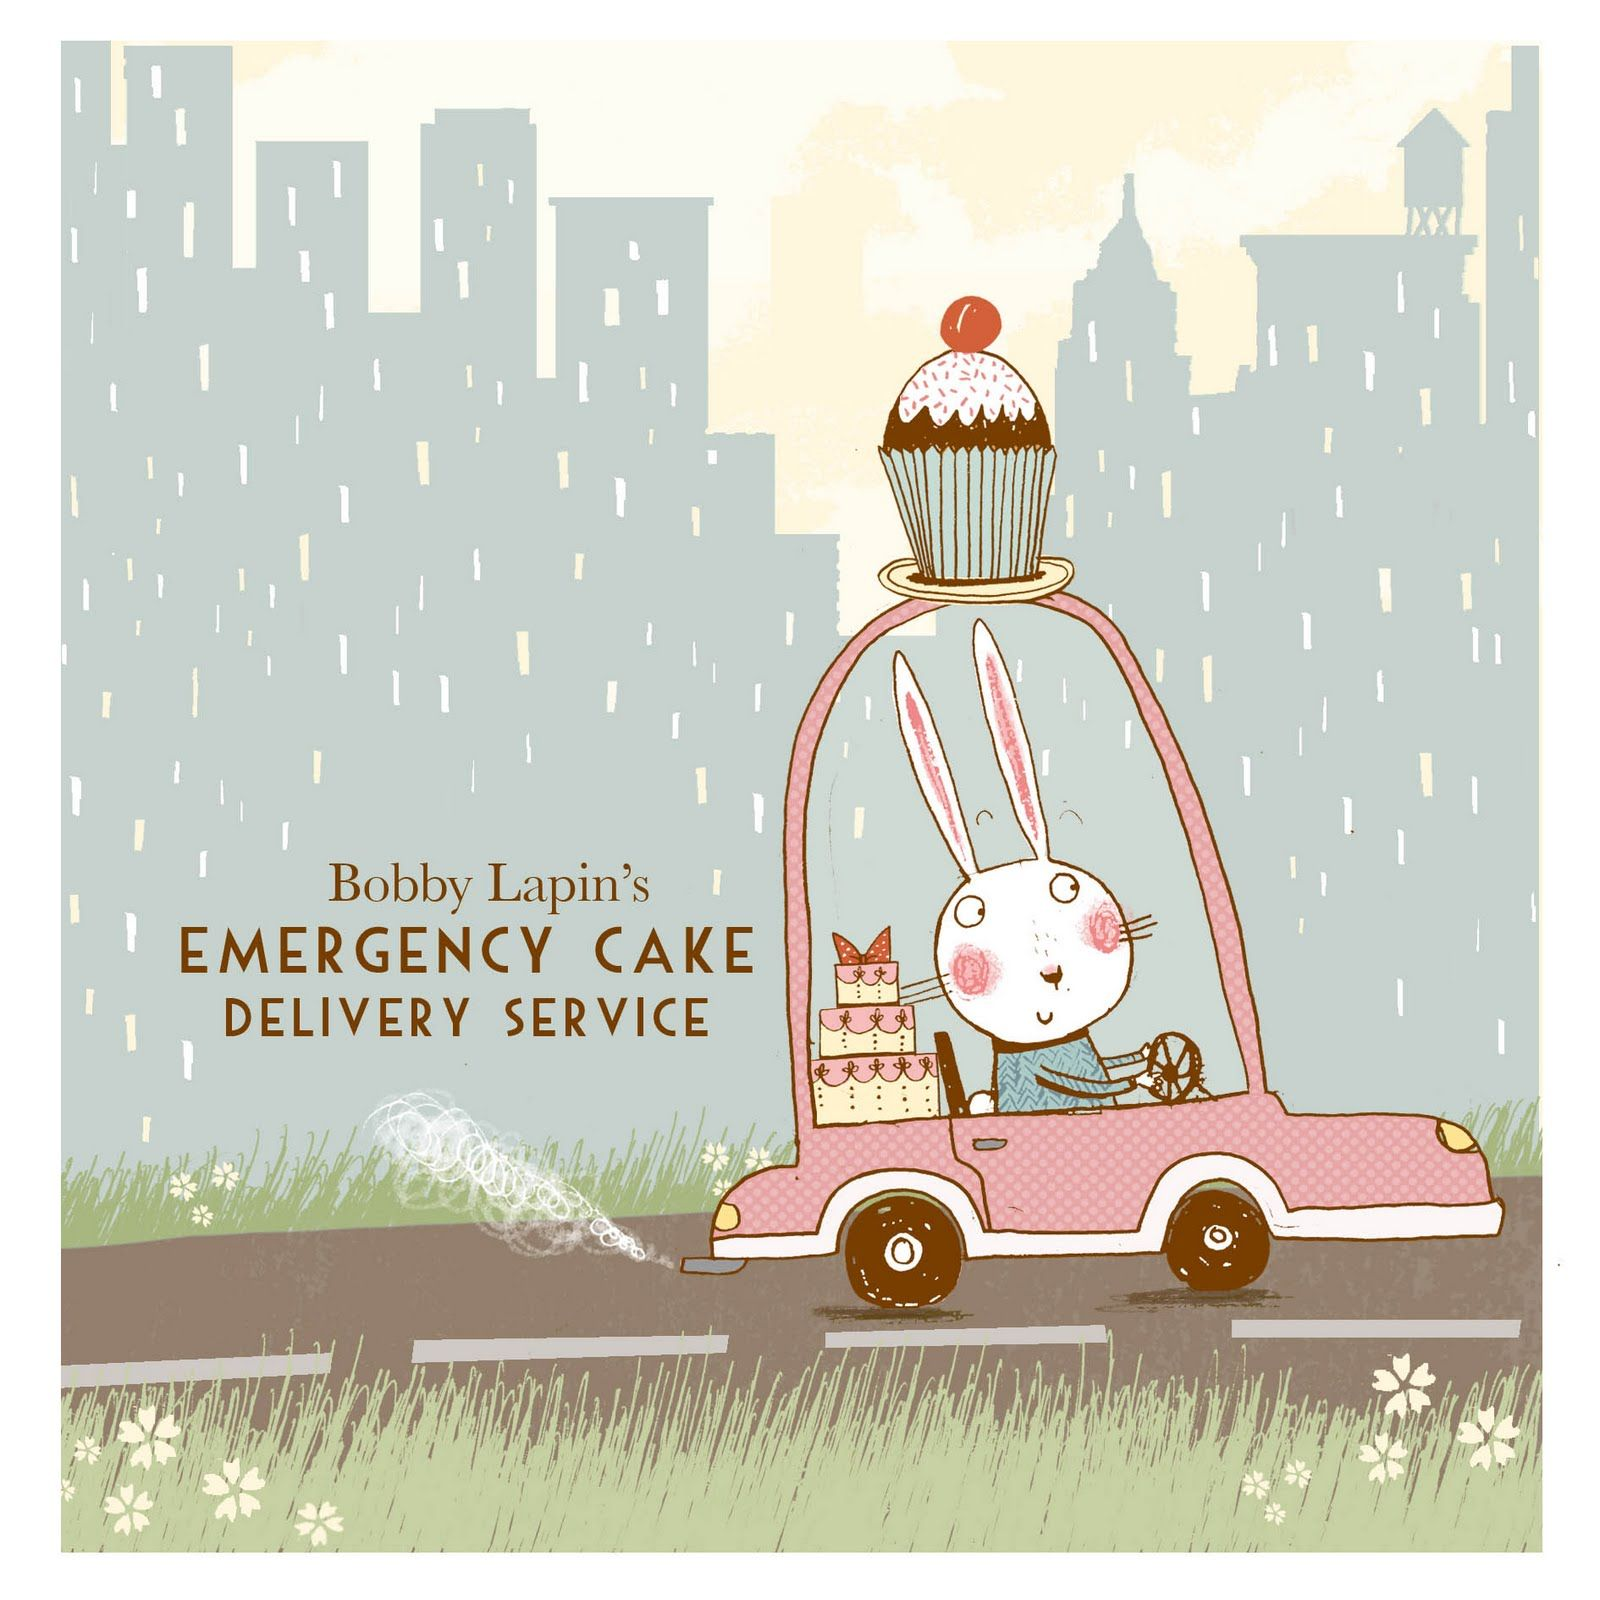 I totally need an emergency cake delivery service Patterns